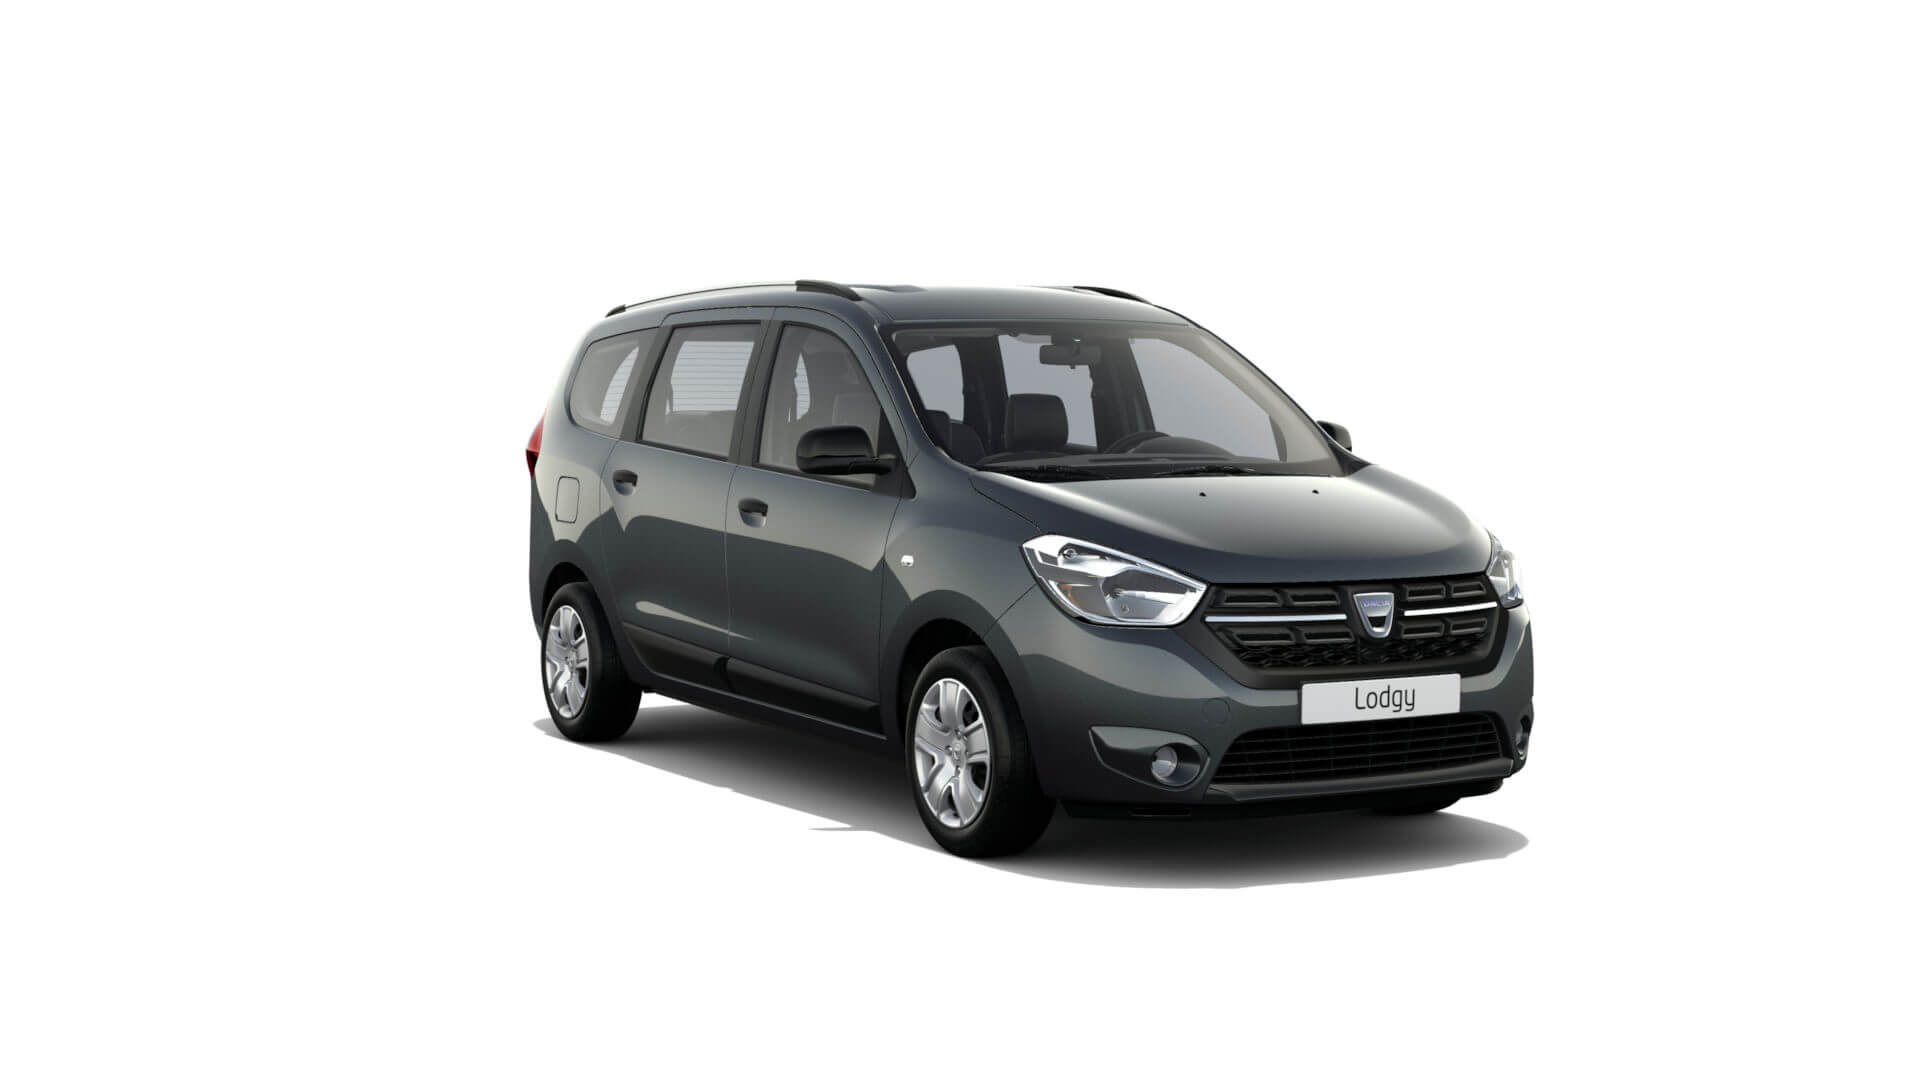 Automodell Anthrazit - Dacia Lodgy - Renault Ahrens Hannover